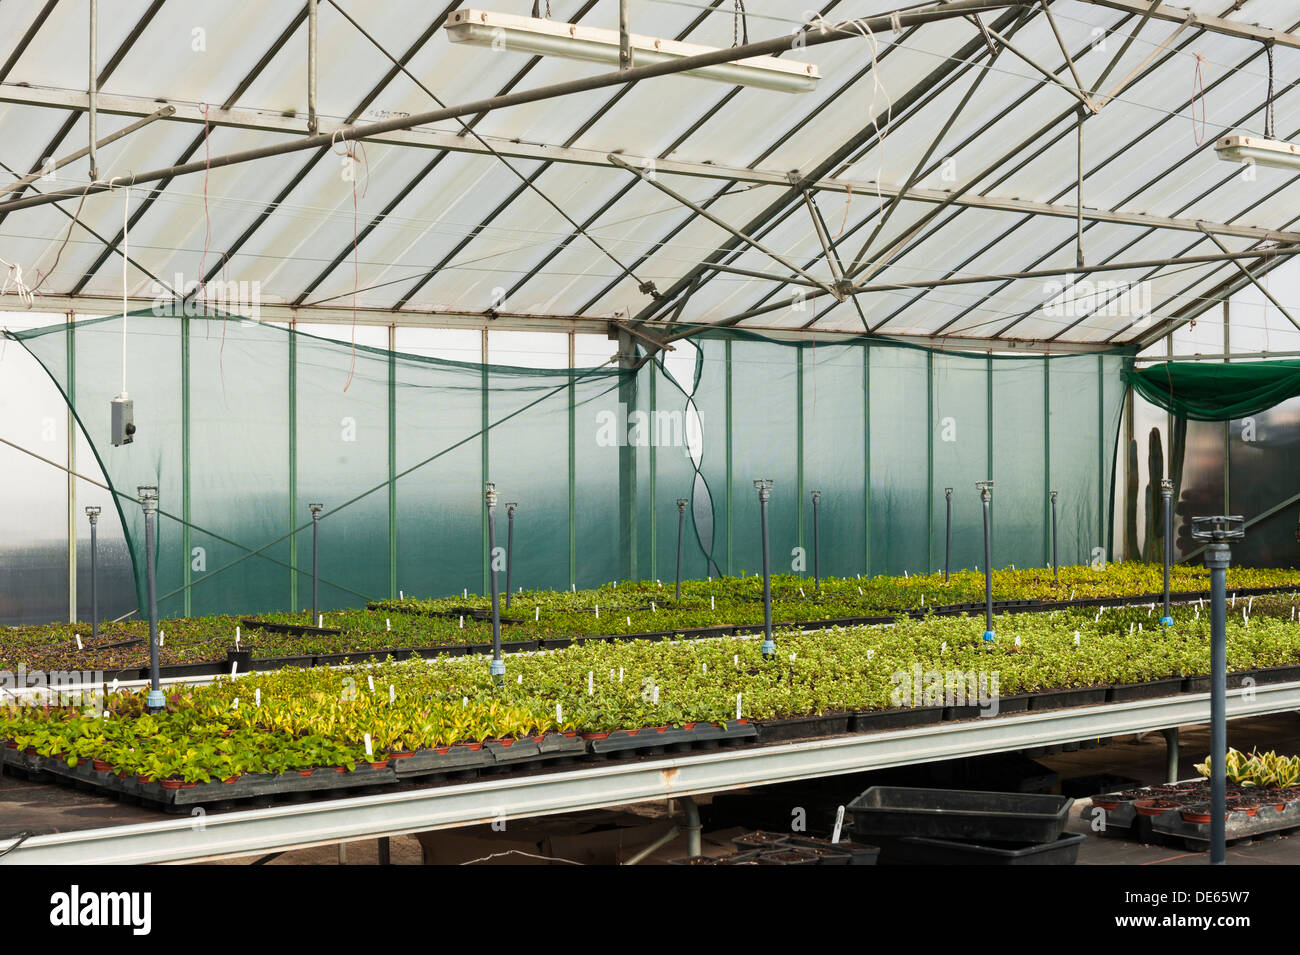 A greenhouse provides a warm environment for a large number of fledgling nursery plants. - Stock Image